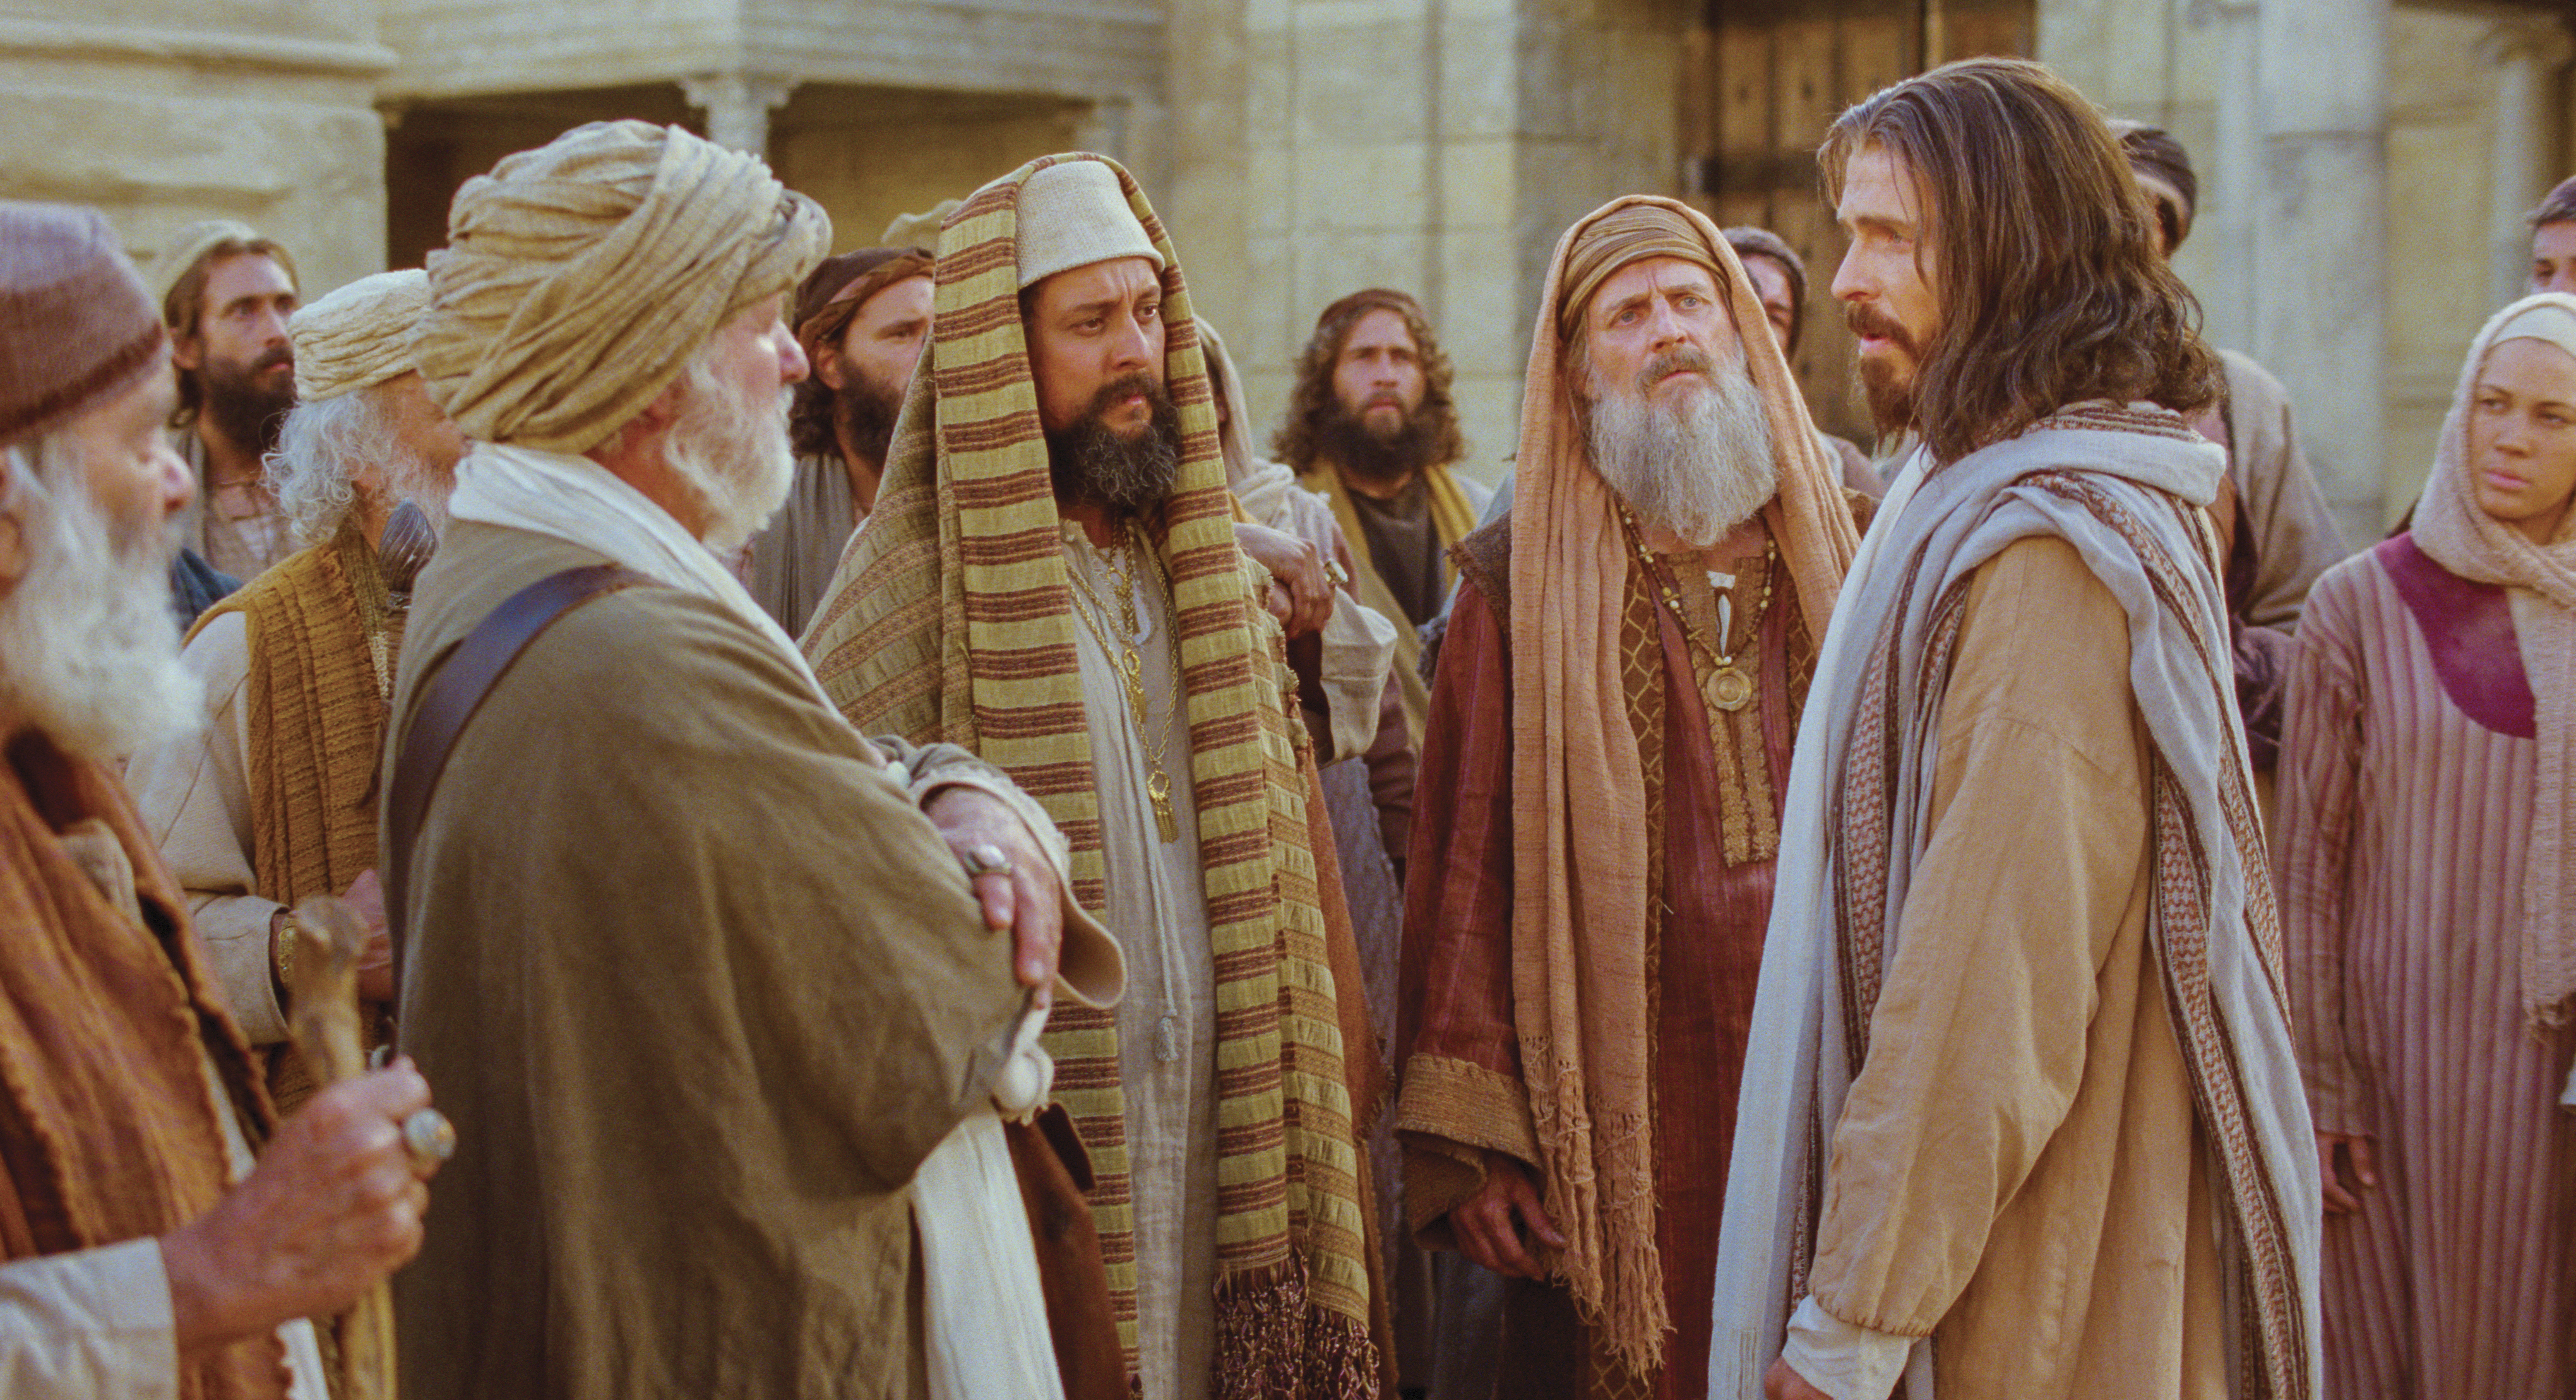 The Pharisees confront Jesus.